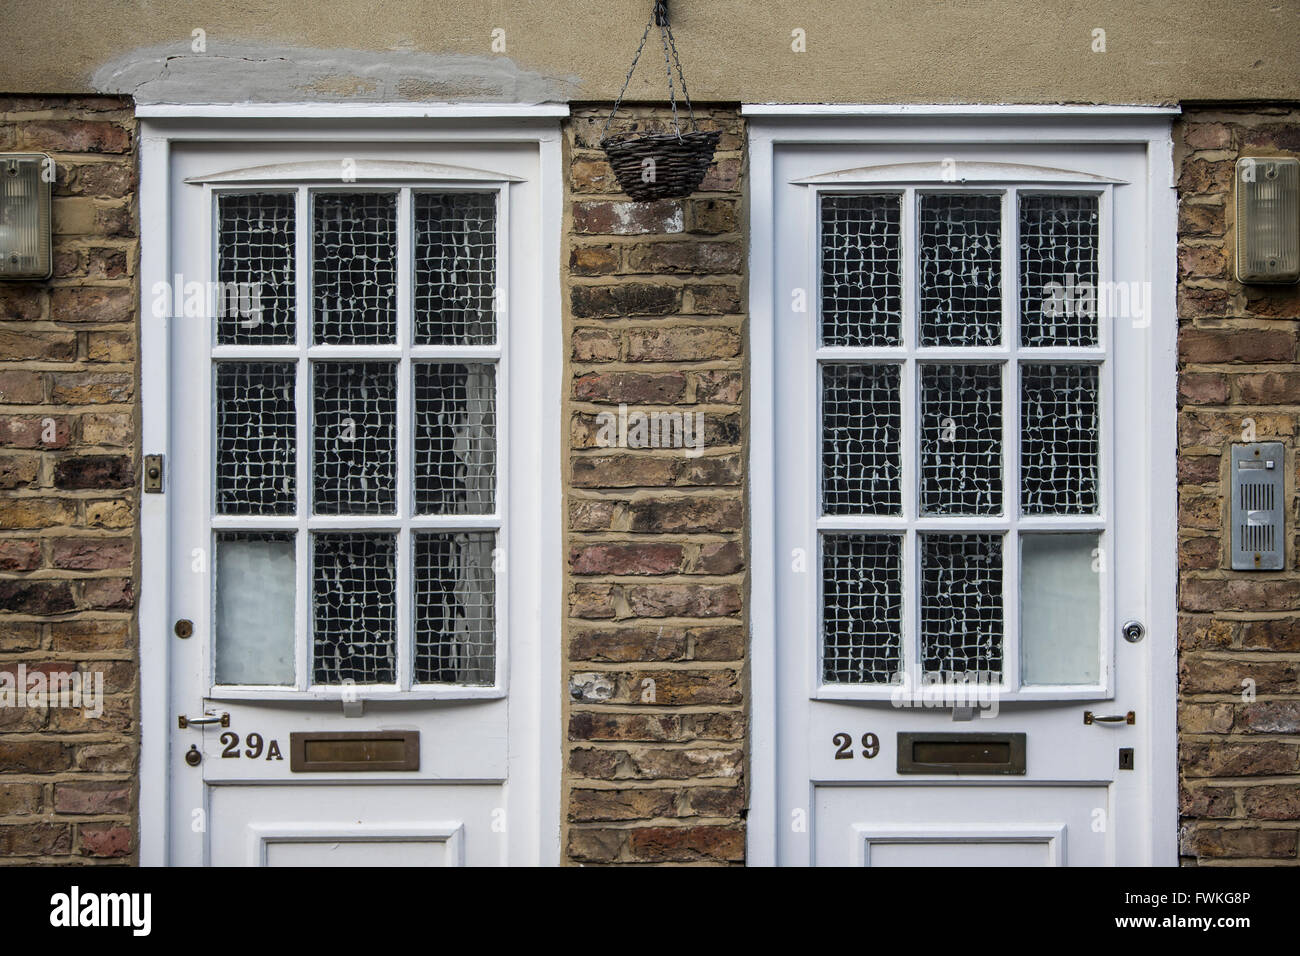 Twin doors, identical, neighbours, neighbors, white doors, old style - Stock Image